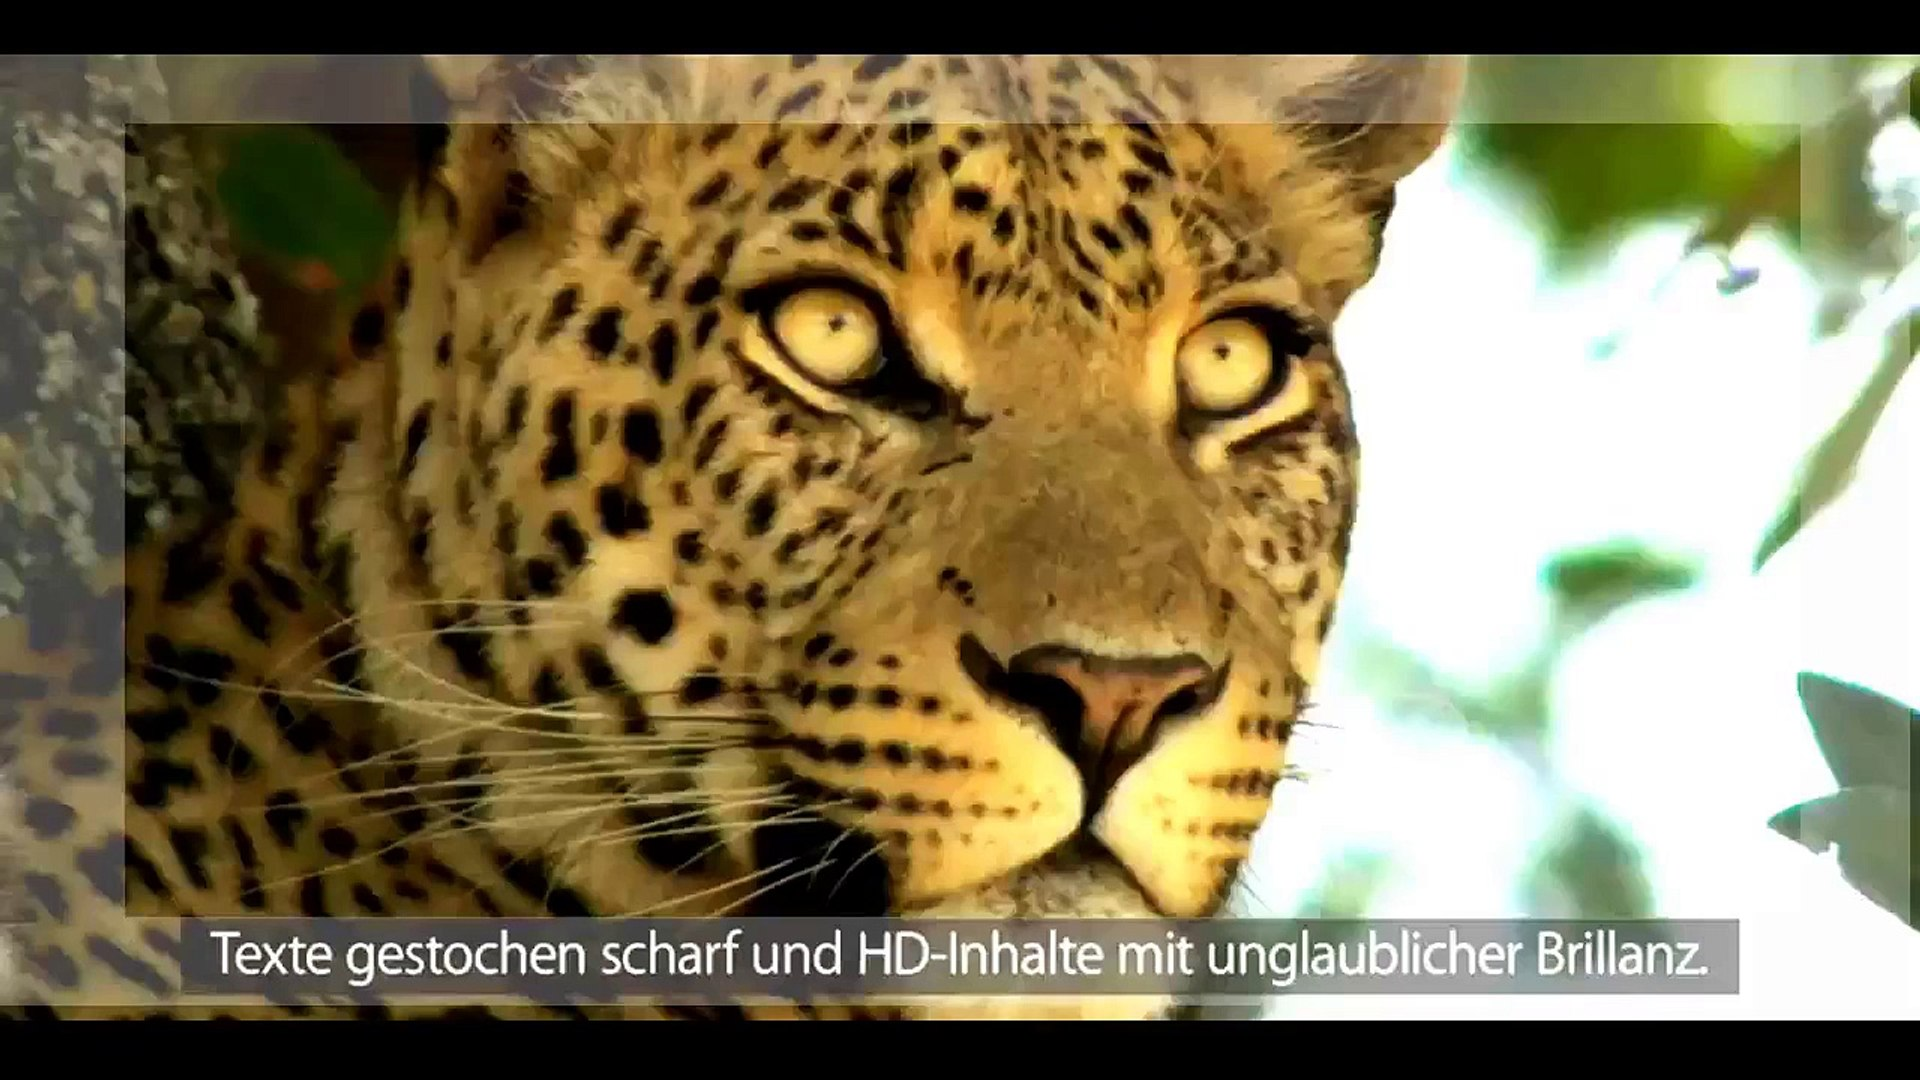 HiTech Werbung   iMac   Werbung   Deutsch Features Video   2009   720 HD